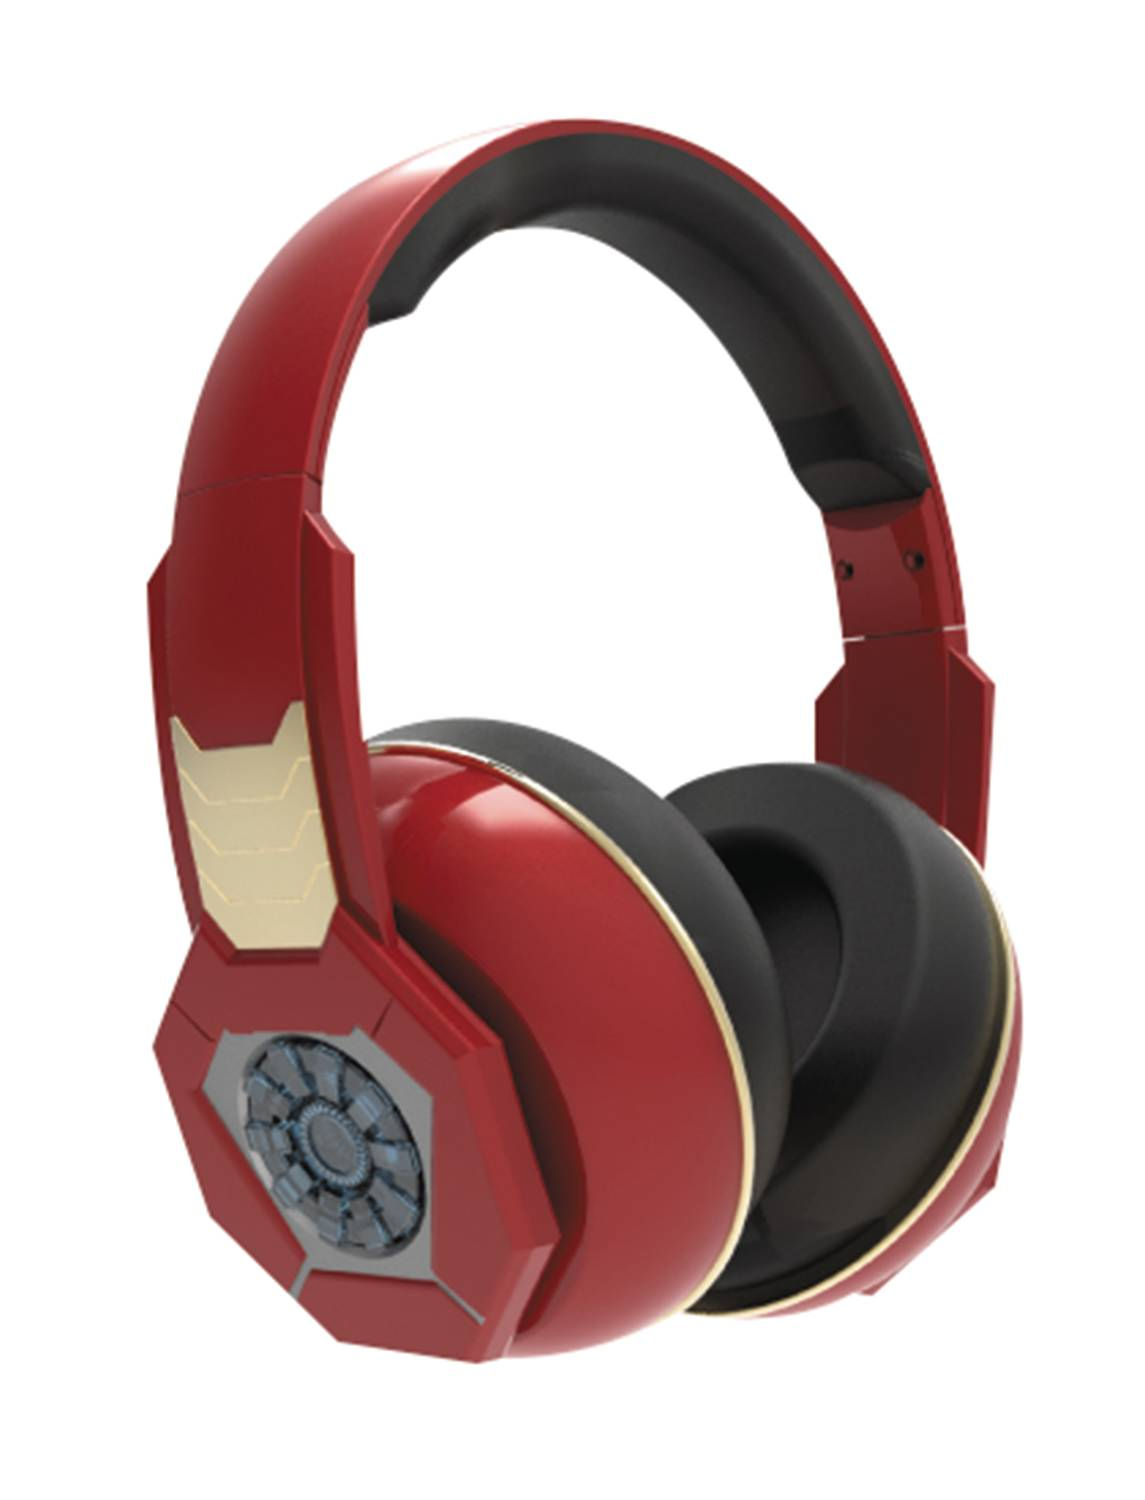 Captain America: Civil War Iron Man Bluetooth Headphones